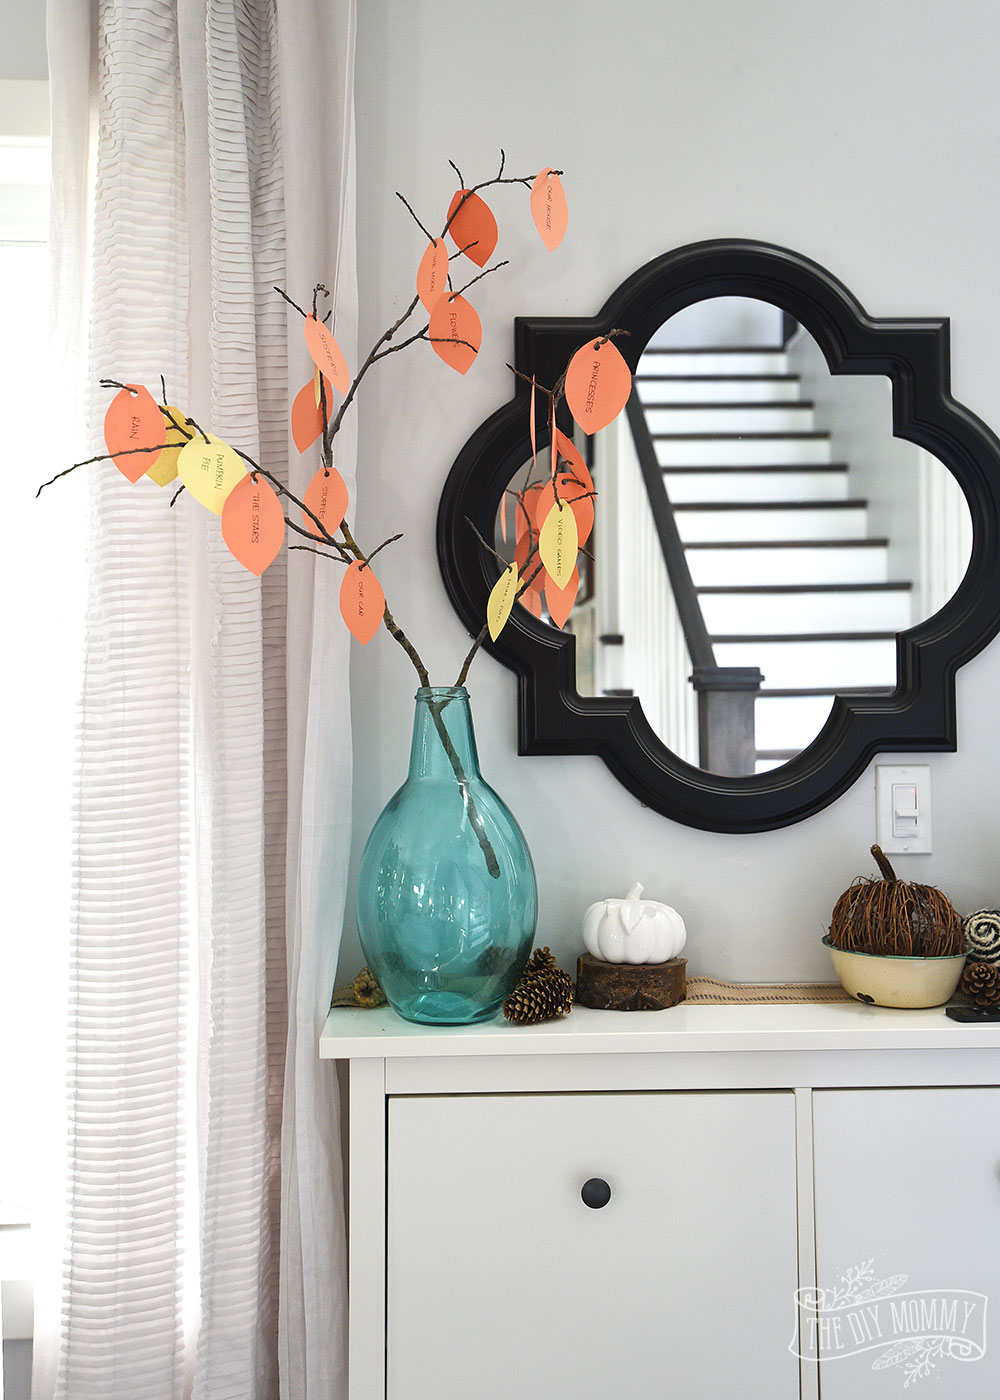 Eco-friendly Thanksgiving decor idea from DIY Mommy